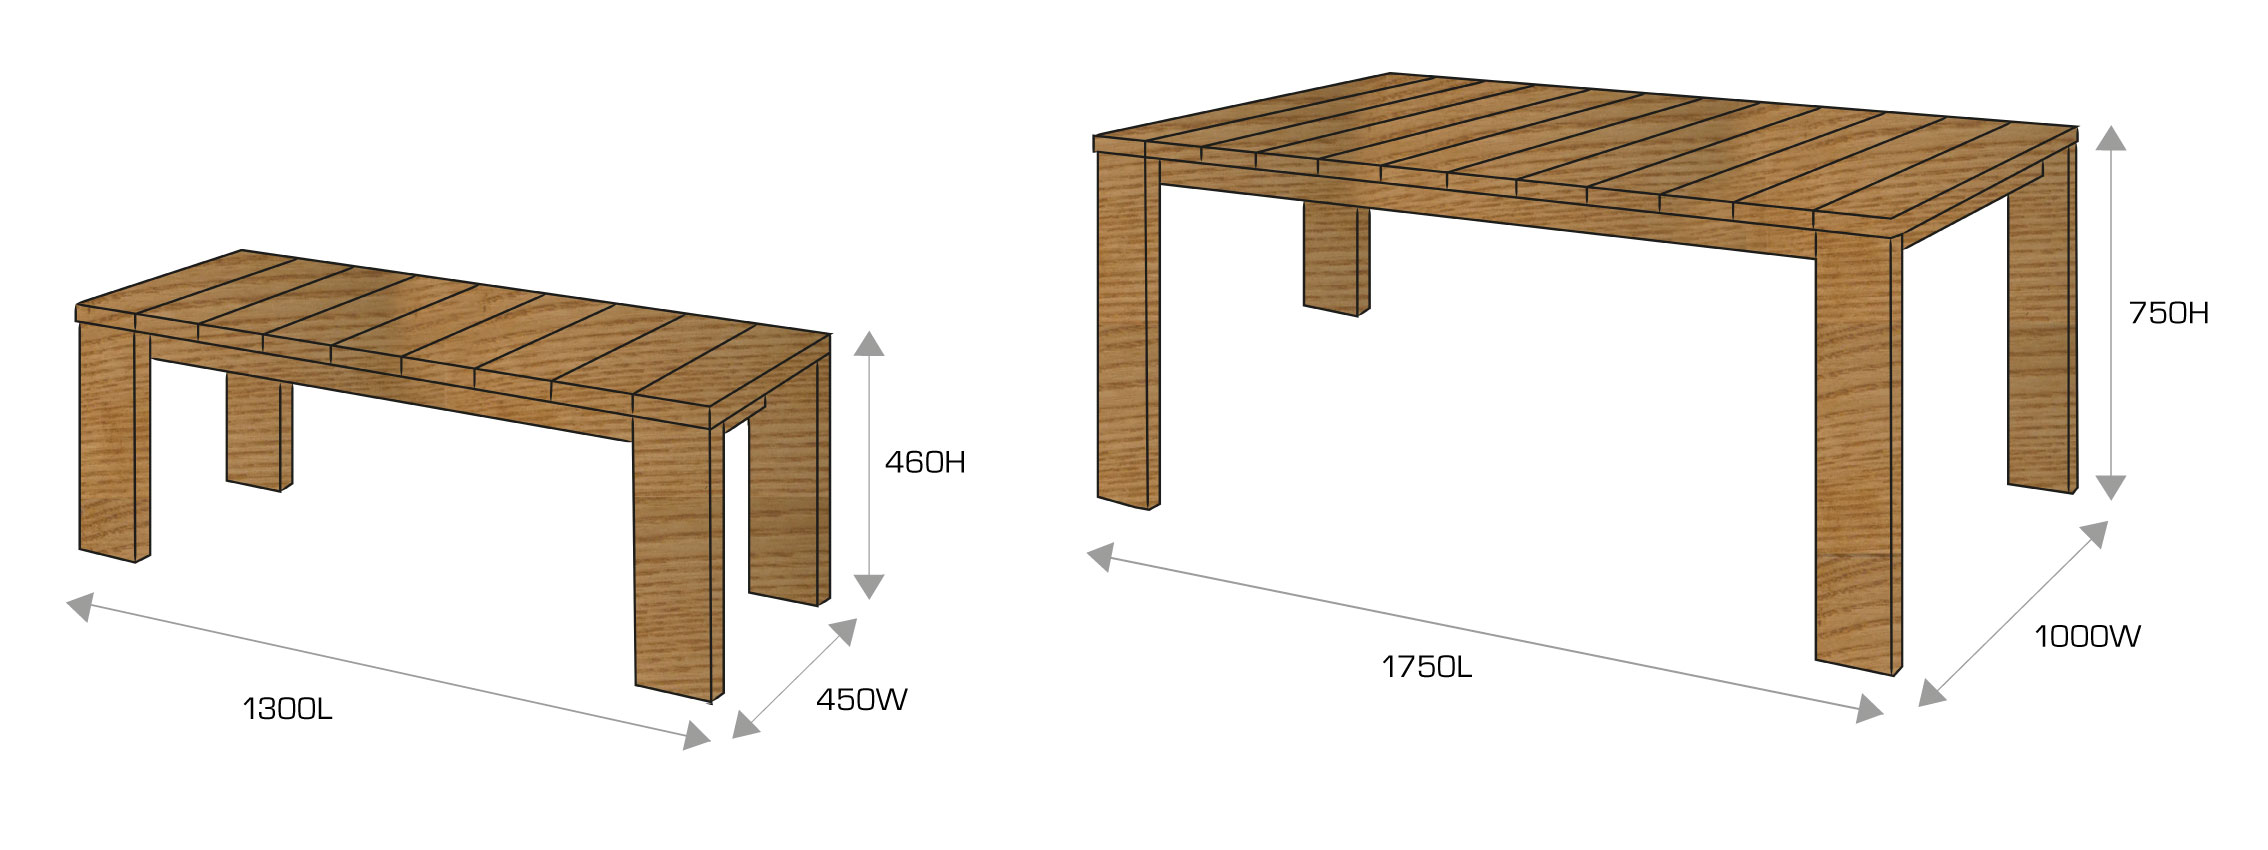 Dining Table Seats 8 Dimensions Round